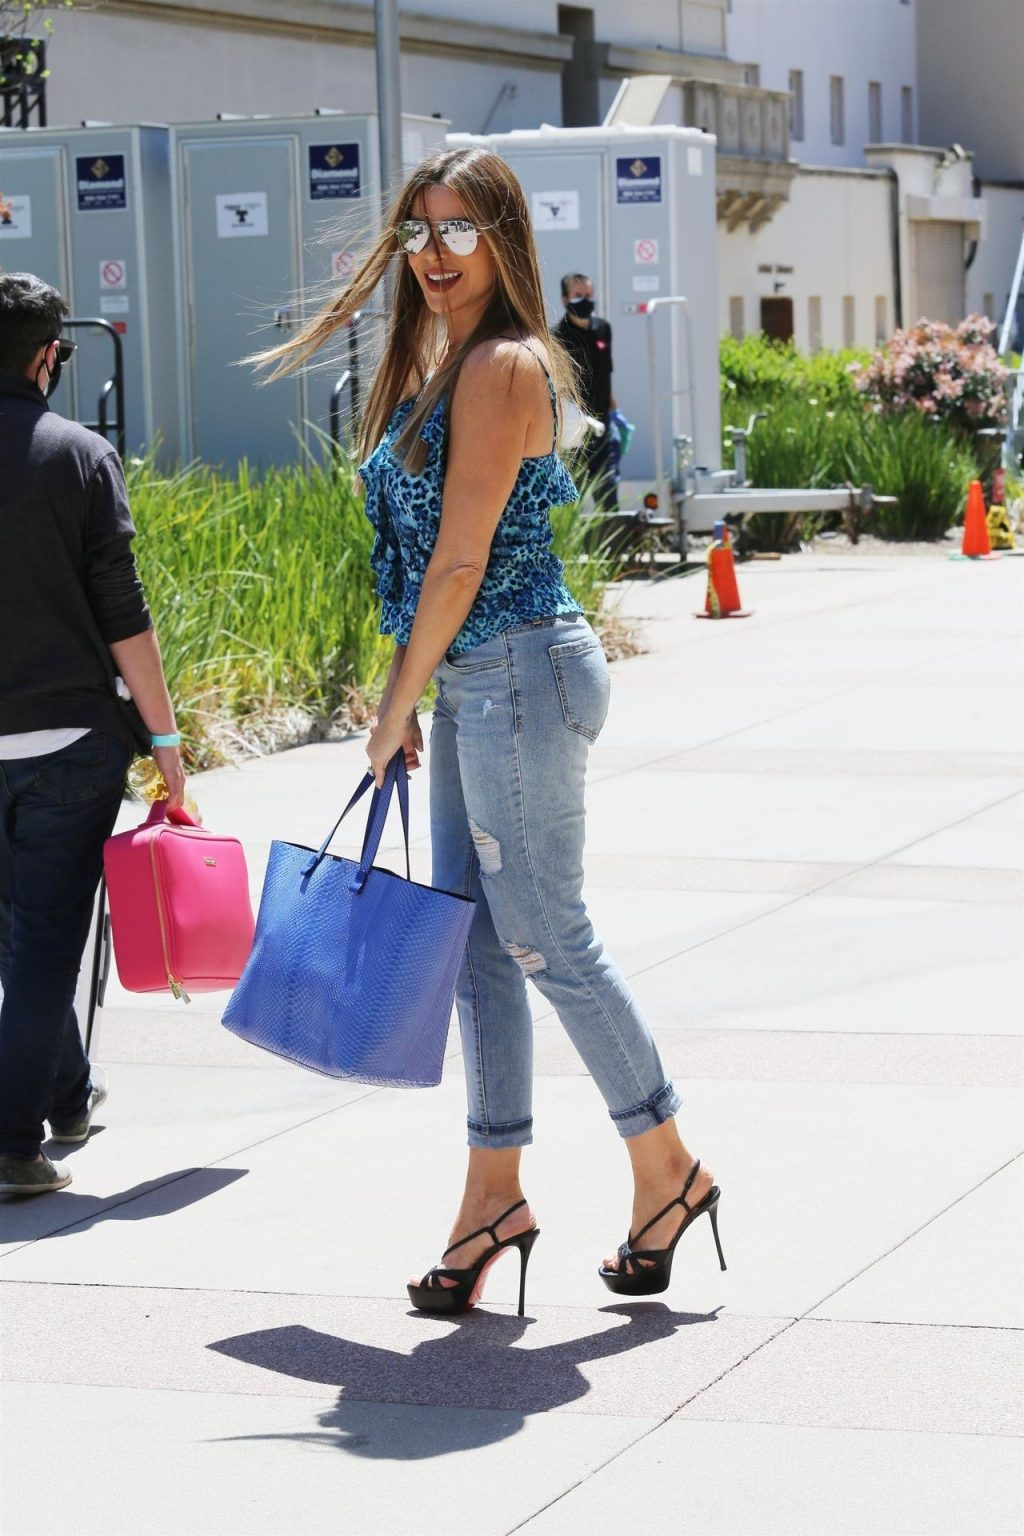 Sofia Vergara Arrives Casually in Jeans for AGT Taping in LA (55 Photos)